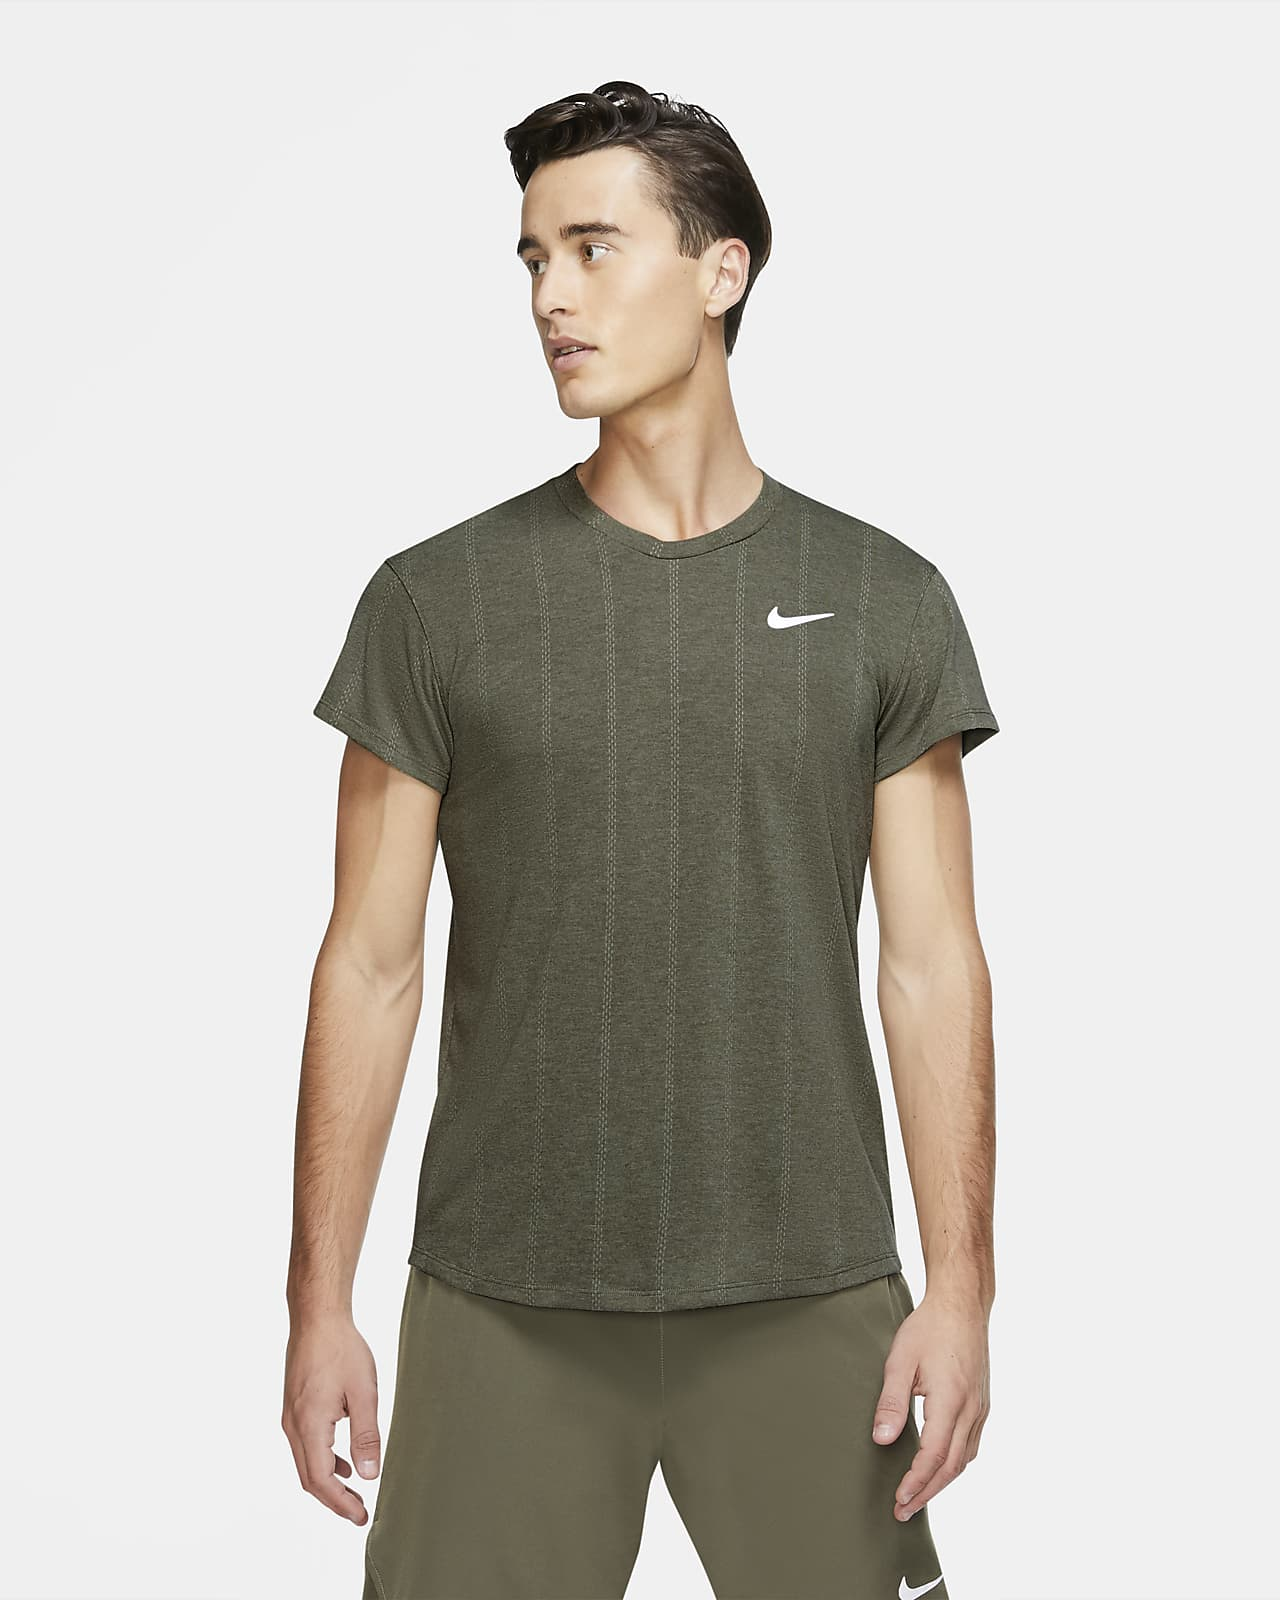 NikeCourt Challenger Men's Tennis Top